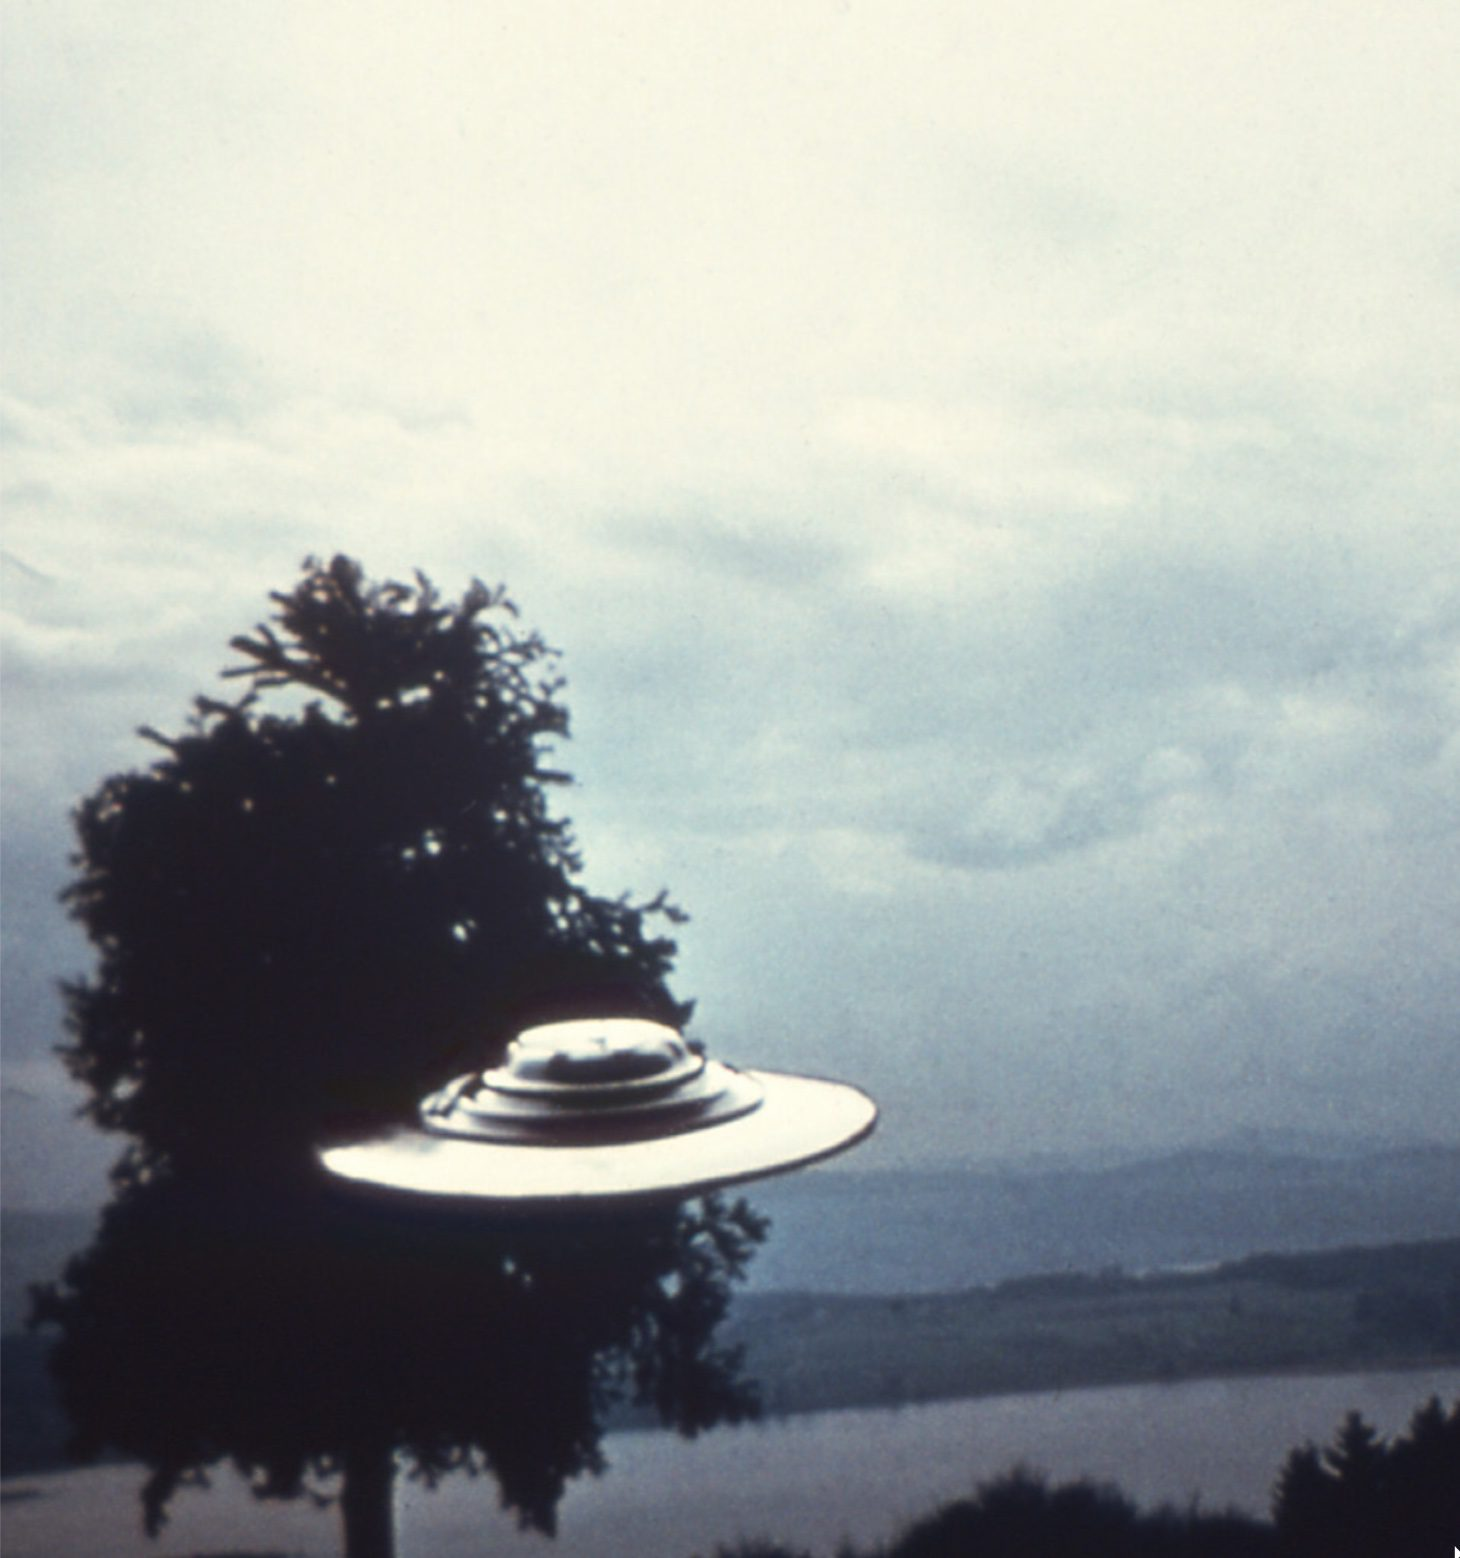 Plejaren Beam Ship - Billy Meier